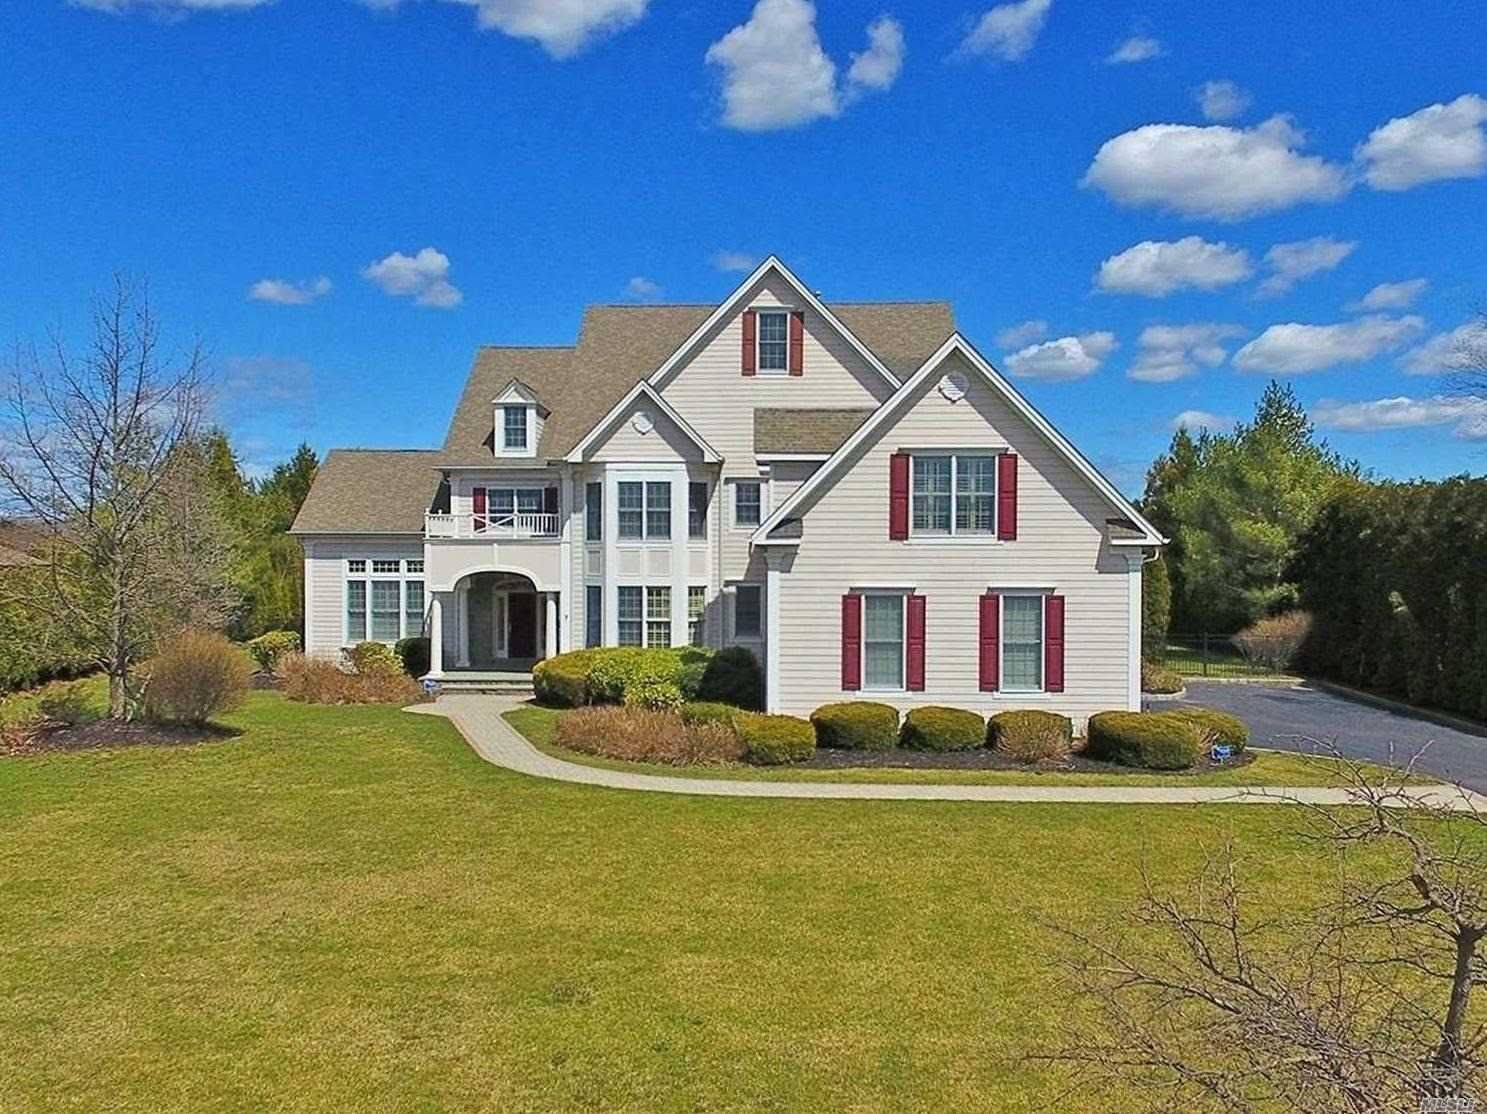 7 Legends Circle, Melville, NY 11747 - MLS#: 3220819